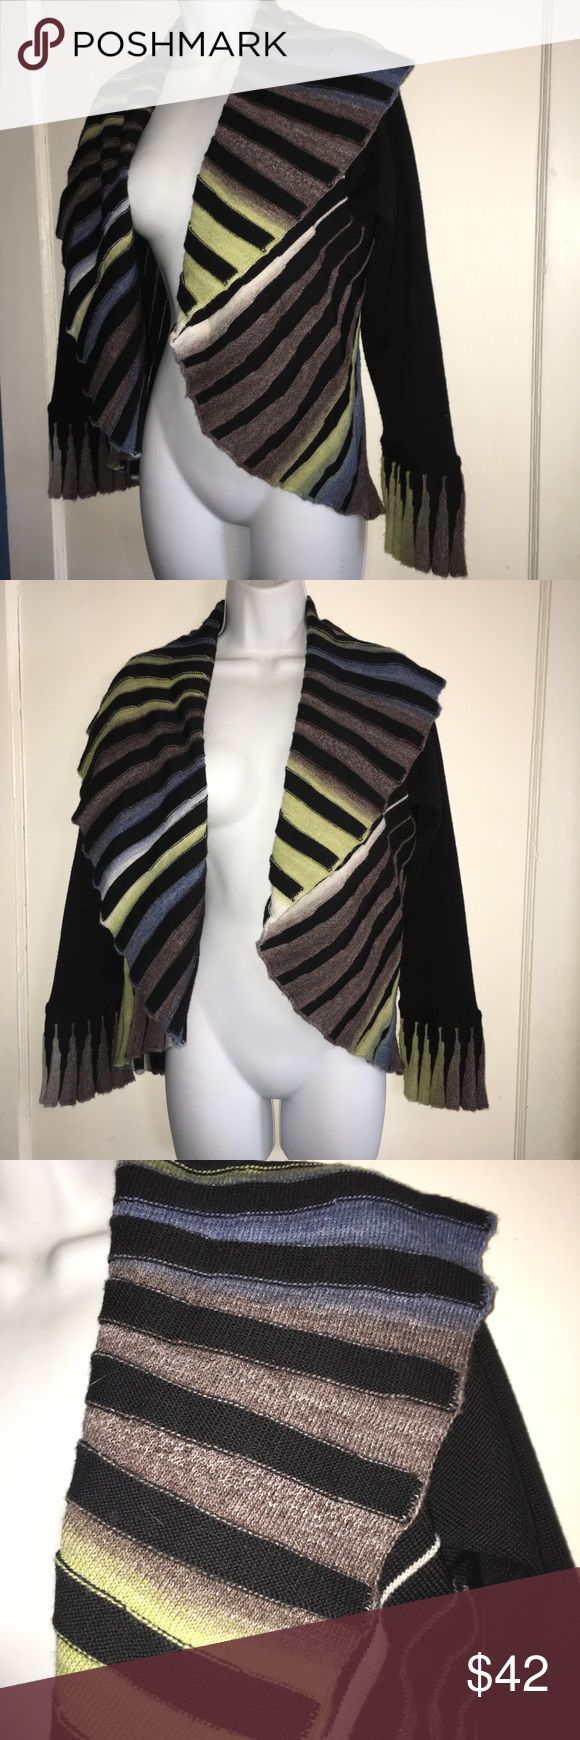 Ange Sweater Open Cardigan Black Stripes Sz M Love the cool open design on this Great colors Well made Merino Wool & acrylic fiber Made in Turkey with Italian yarn angel by Sabri Ozel Sweaters Cardigans